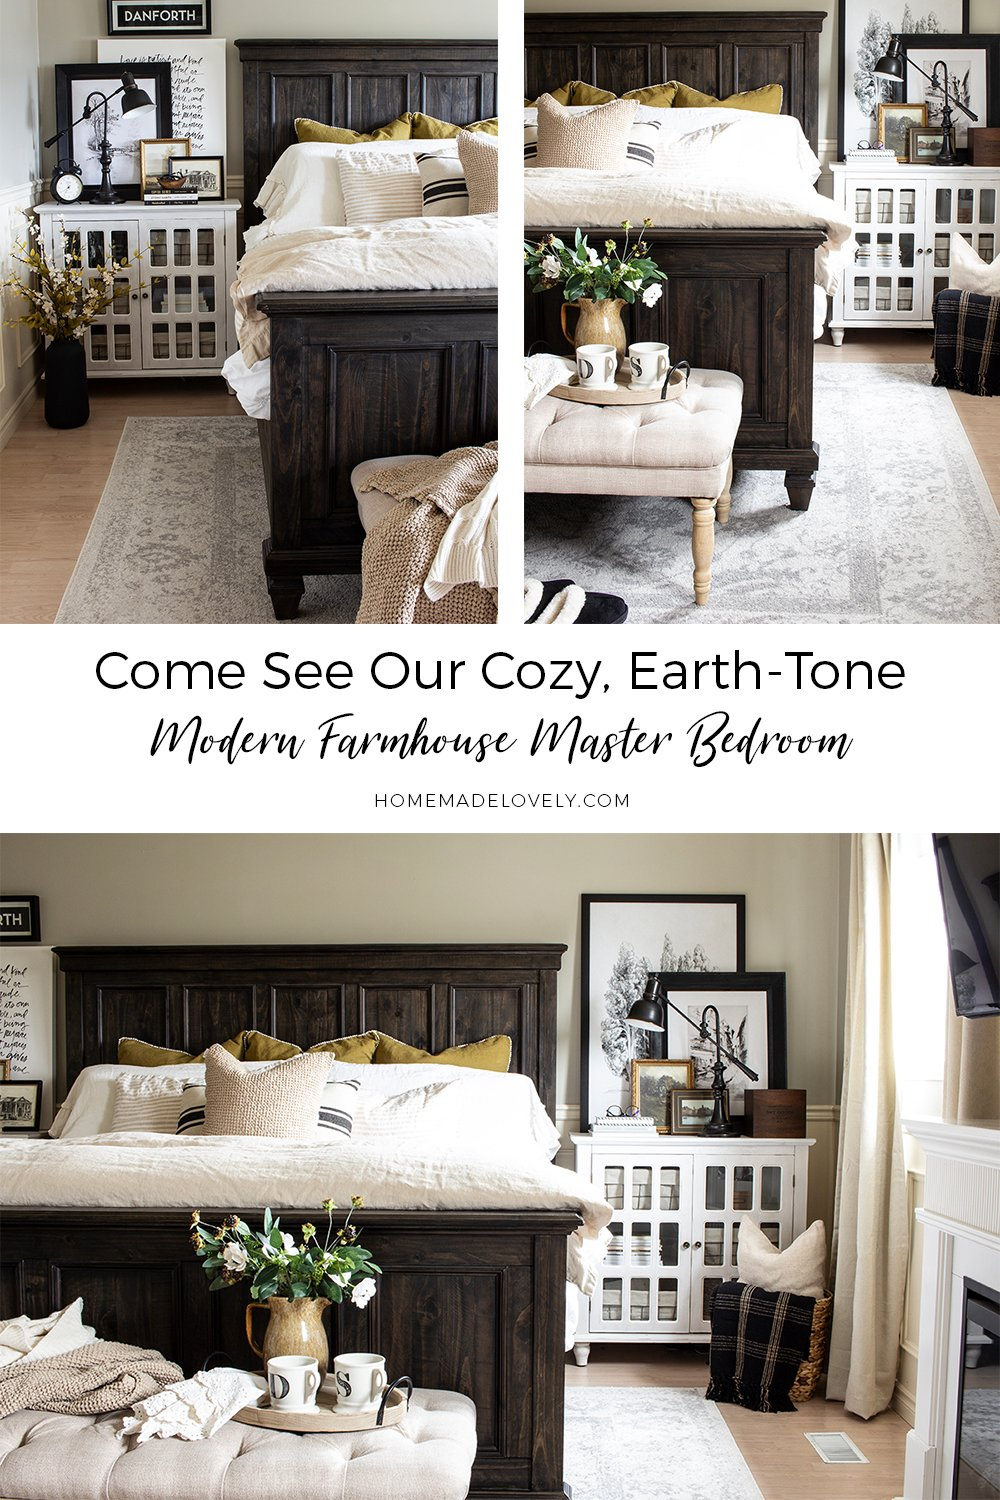 Come See Our Cozy, Earth-Tone Modern Farmhouse Master Bedroom